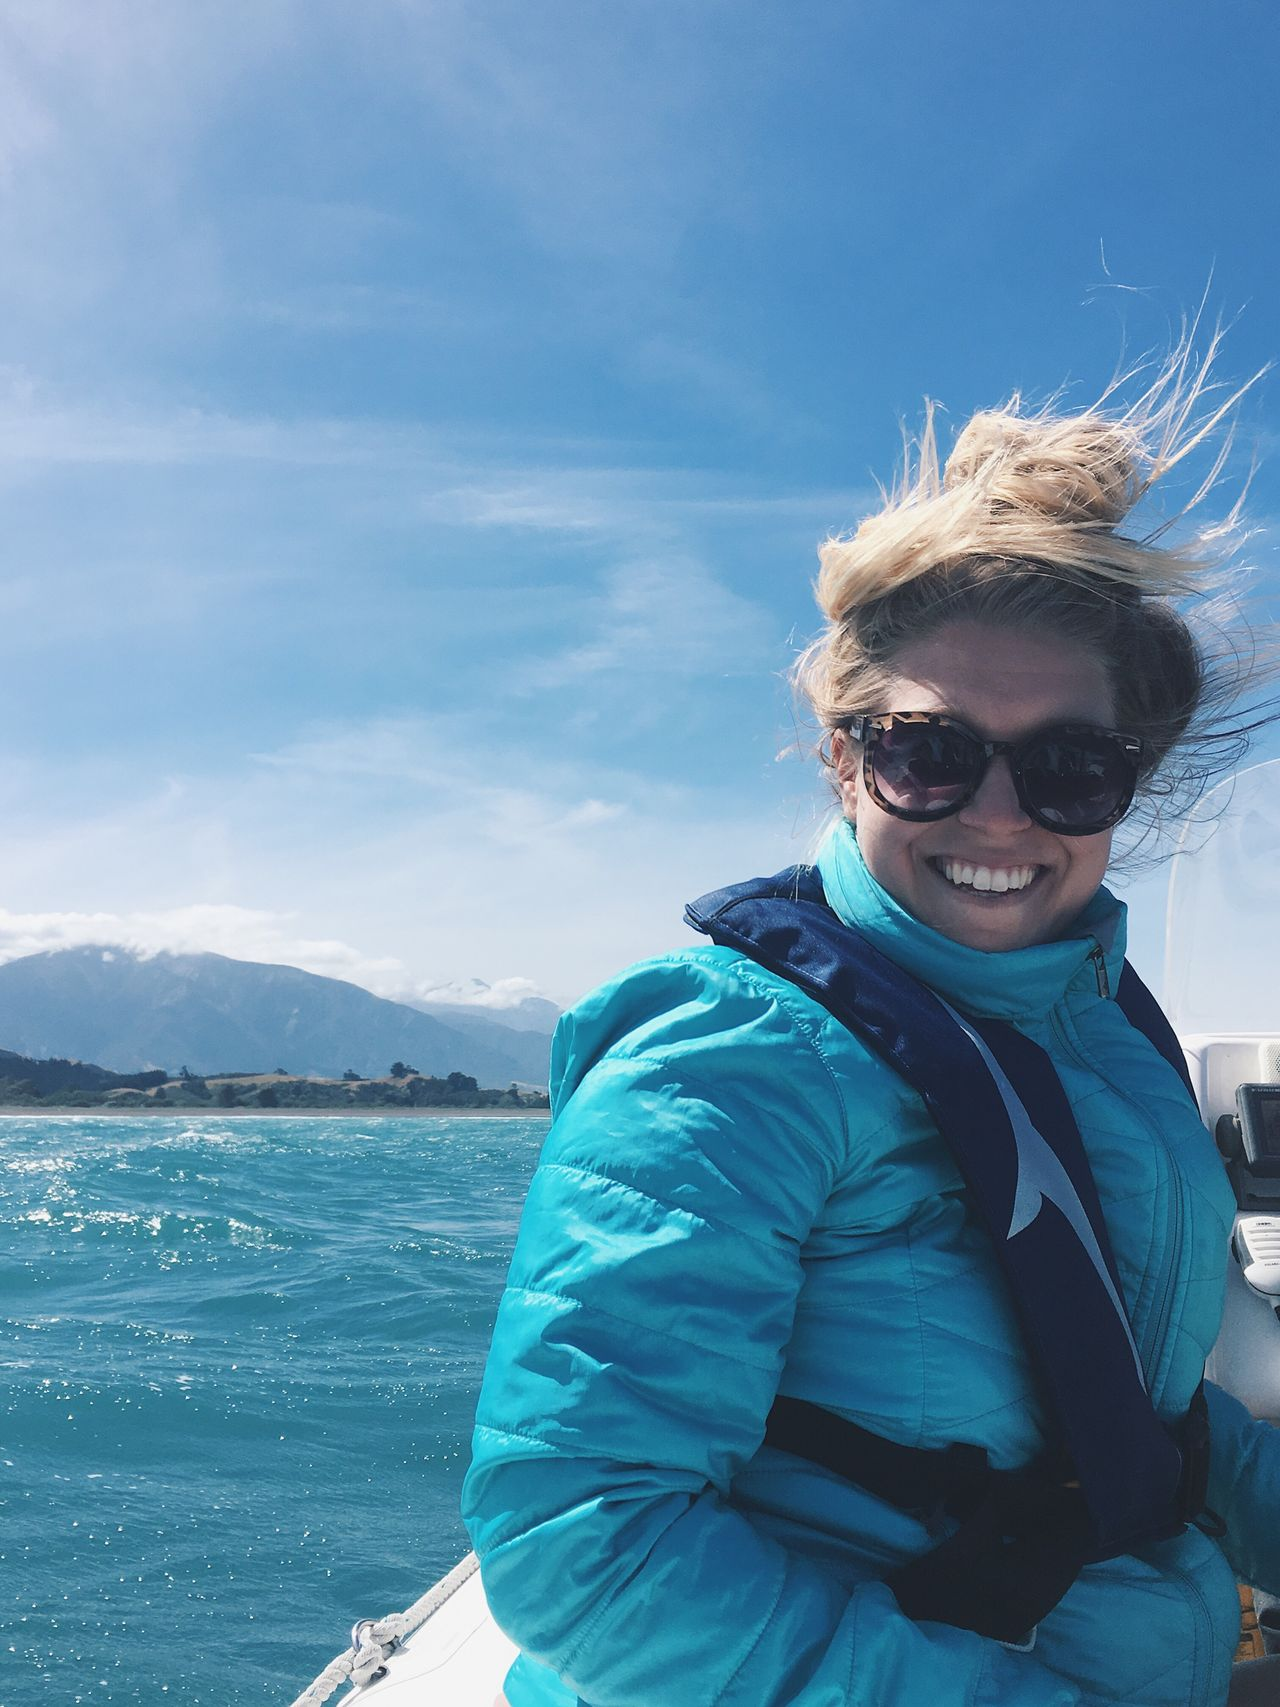 rach One Person Smiling Outdoors Sunglasses Portrait Looking At Camera Real People Leisure Activity Adventure Young Adult Sea Water Nature Sky Day New Zealand Kaikoura